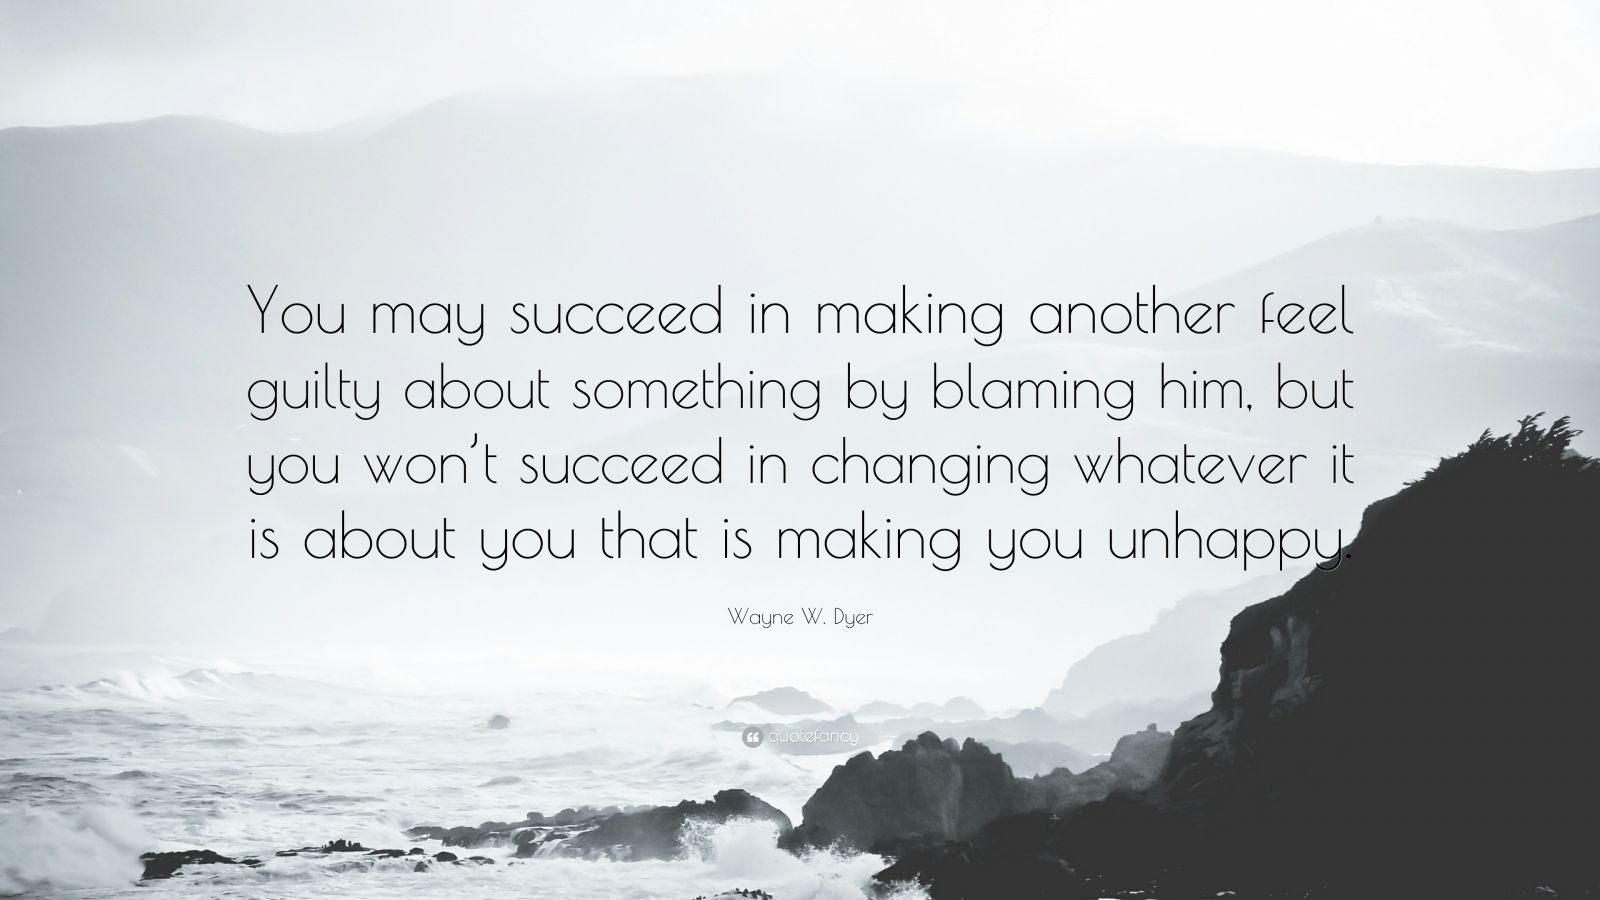 """Wayne W. Dyer Quote: """"You may succeed in making another feel guilty about something by blaming him, but you won't succeed in changing whatever it is about you that is making you unhappy."""""""